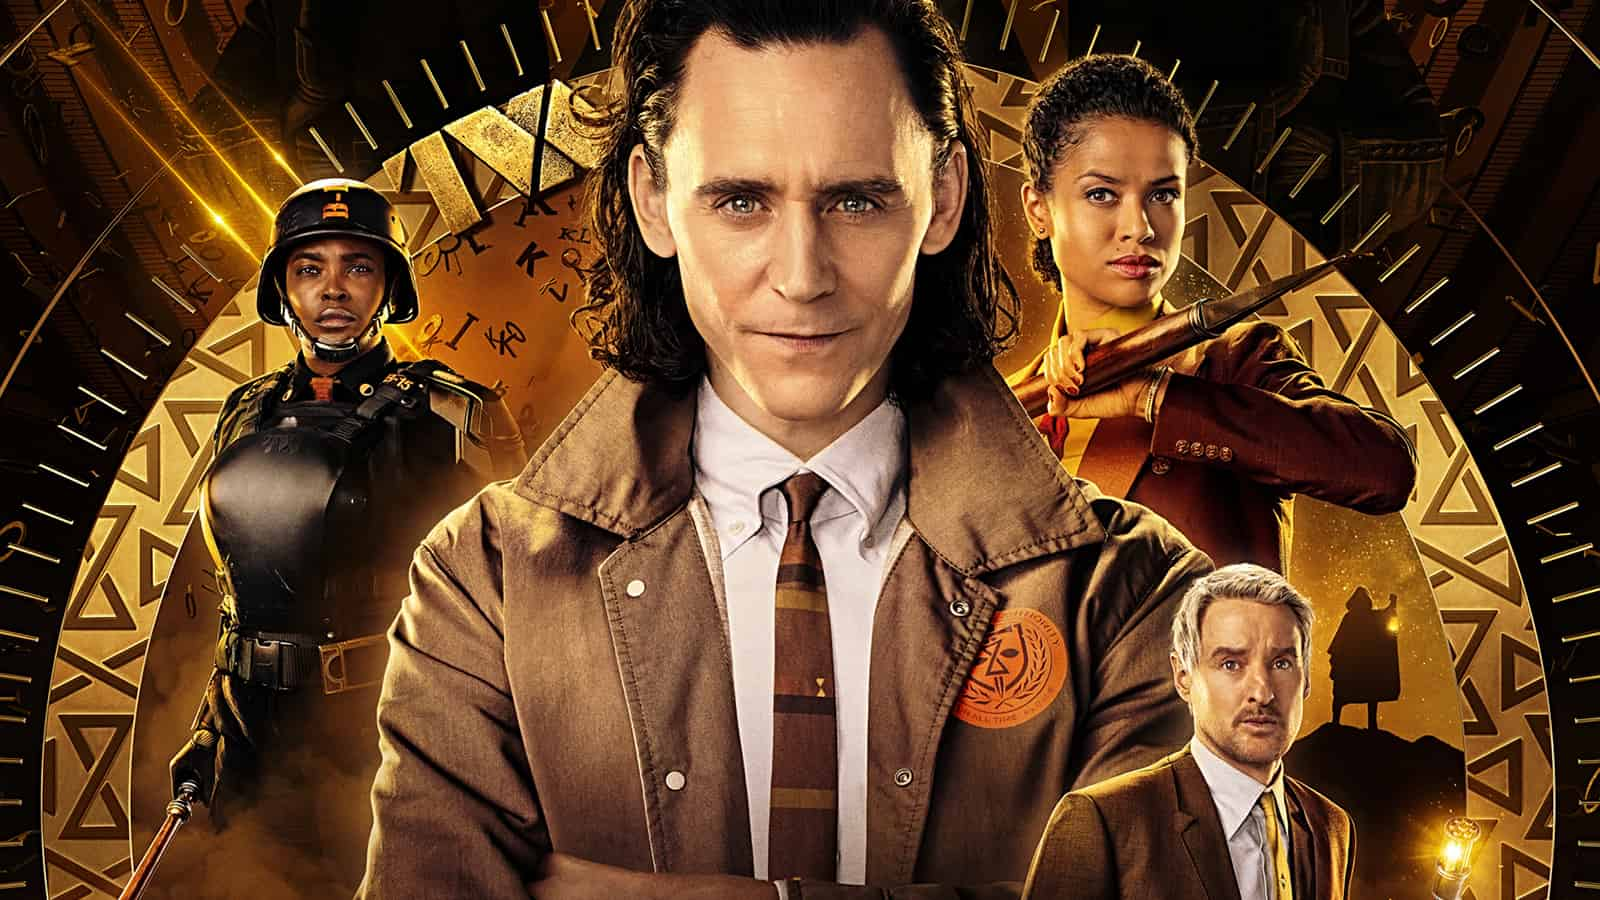 loki-a-good-show-bogged-down-by-the-mcu